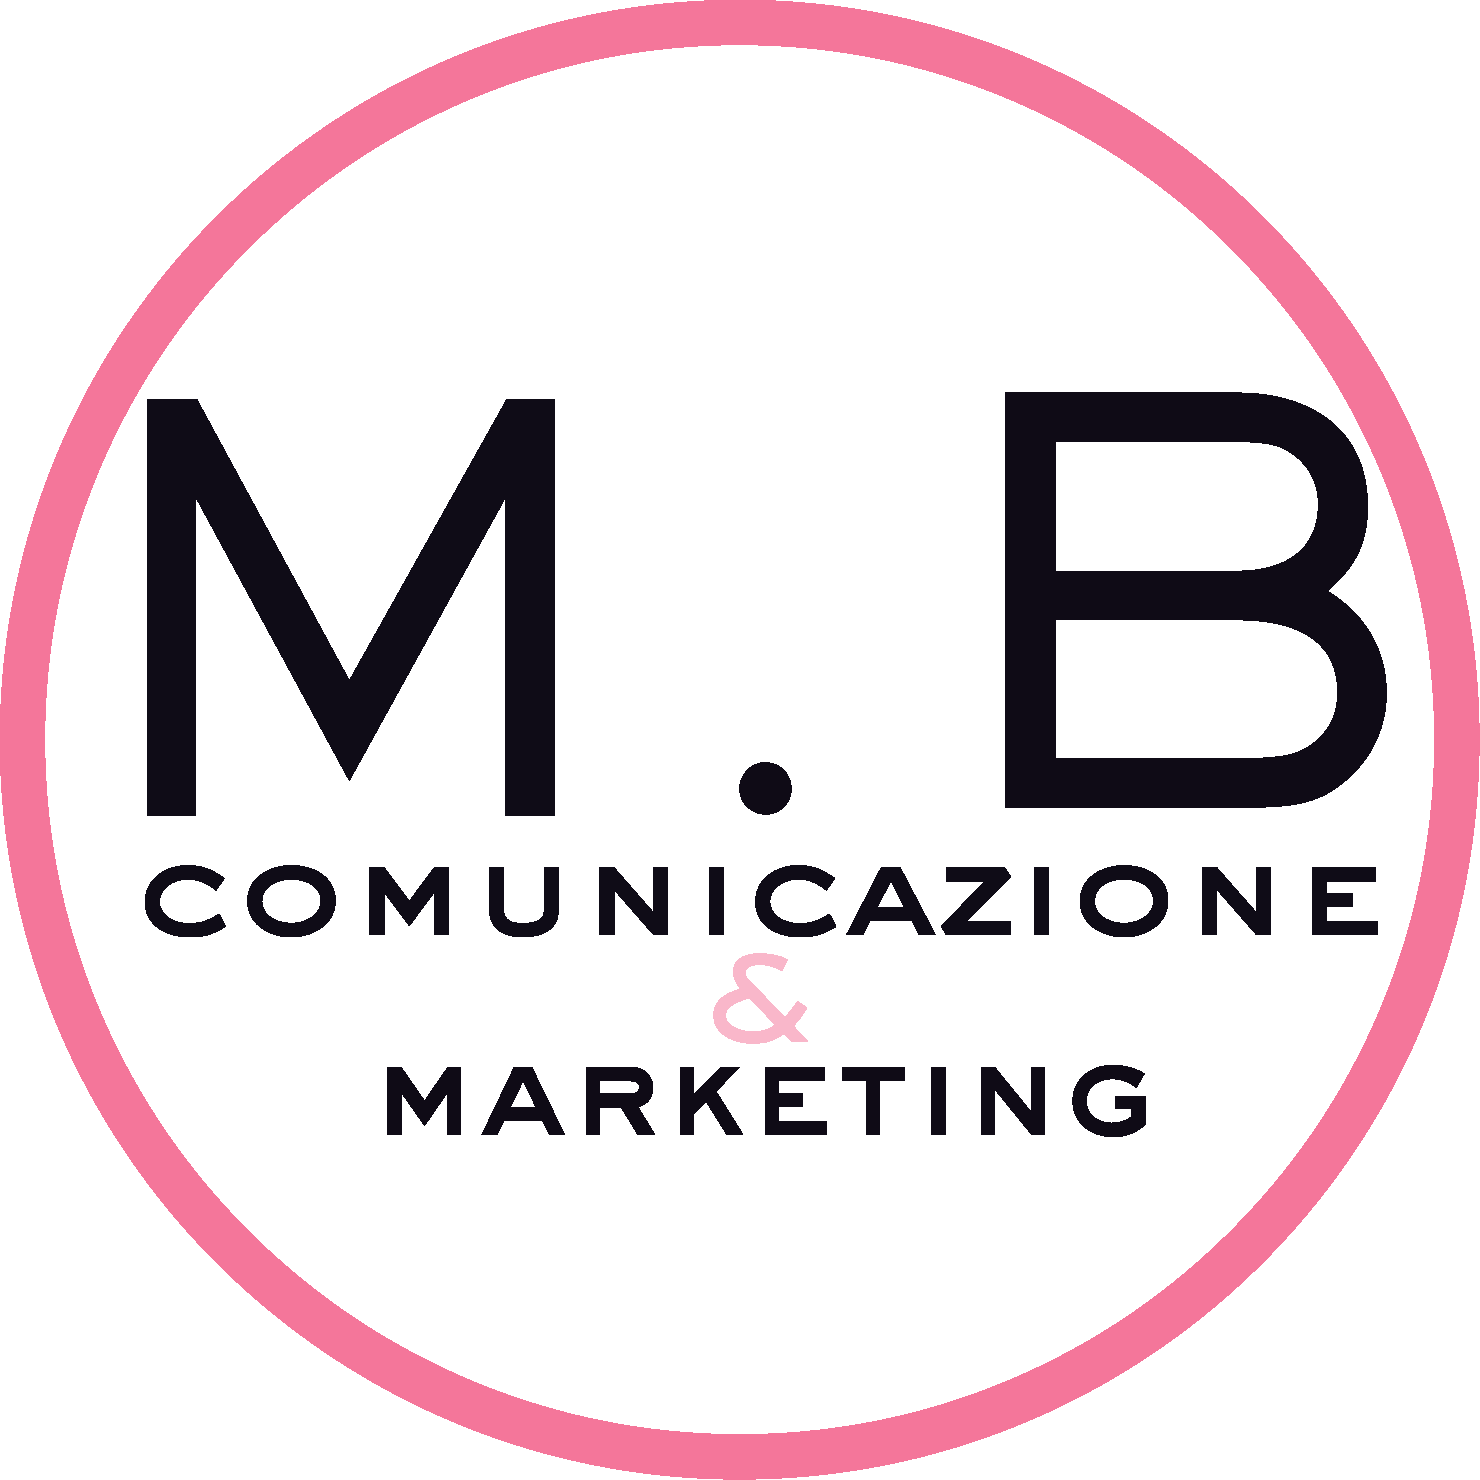 M.B Comunicazione & Marketing